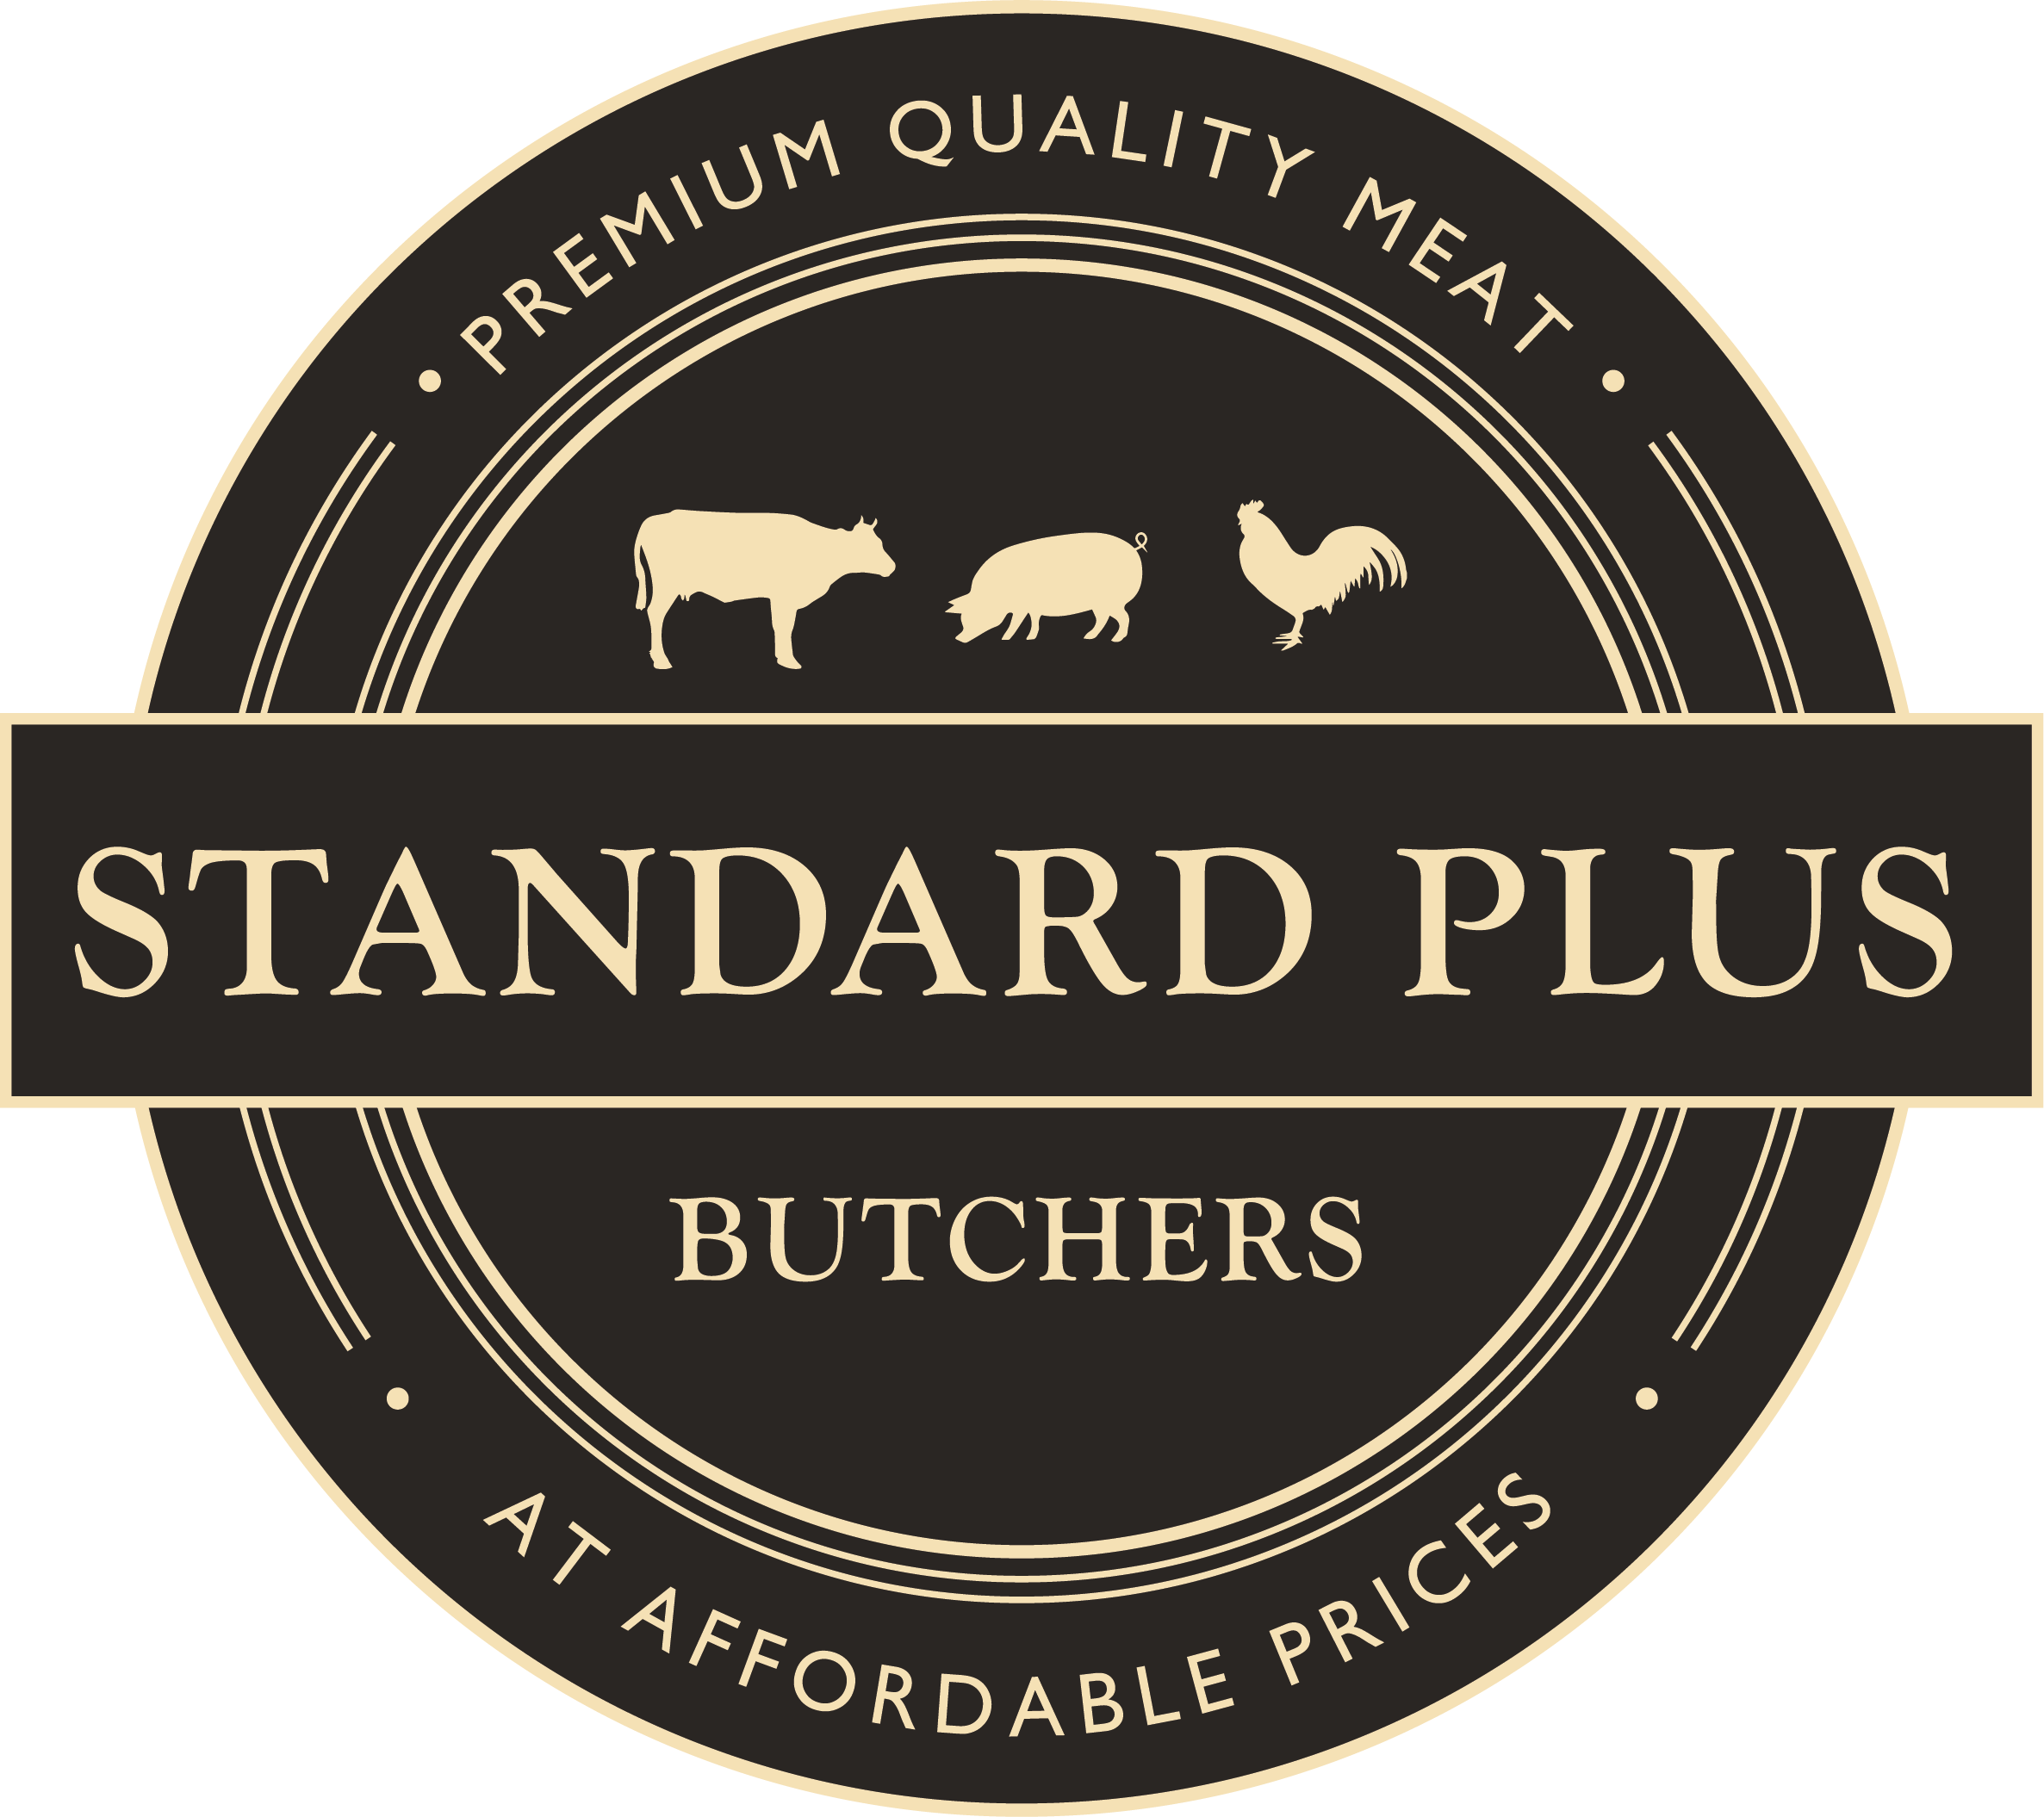 Standard Plus Butchers